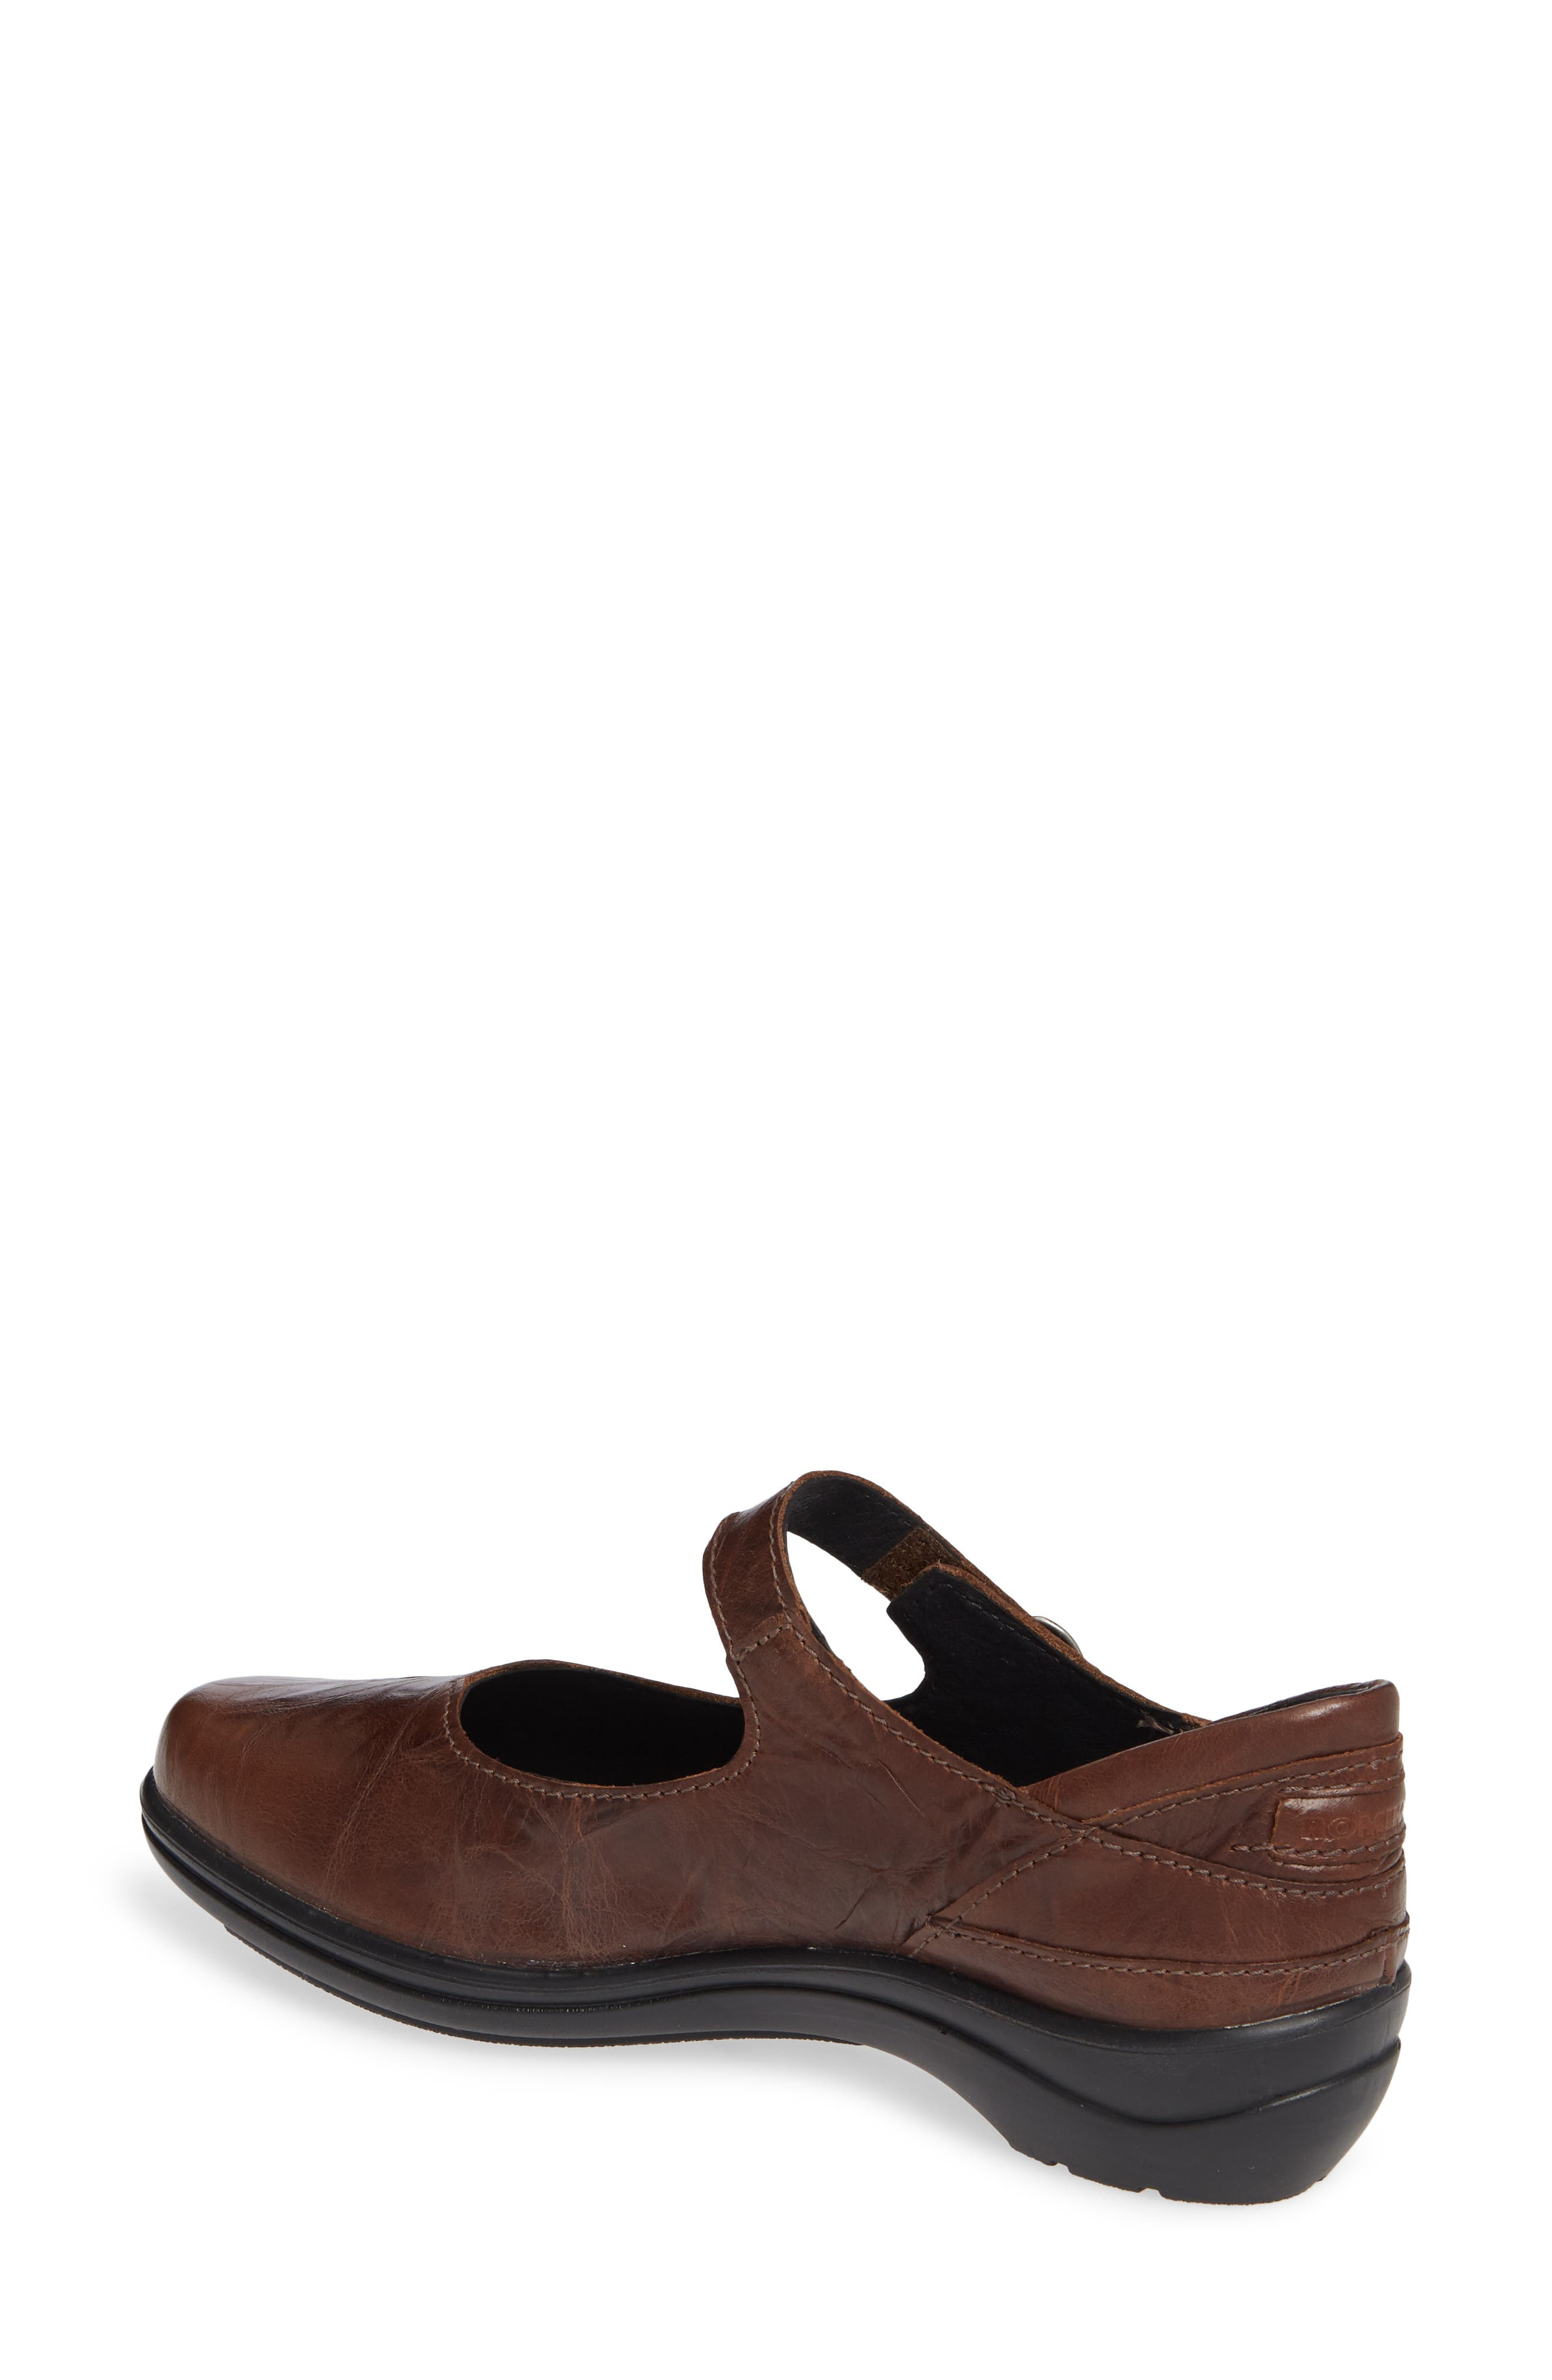 Cassie 50 Mary Jane Flat,                             Alternate thumbnail 2, color,                             BROWN LEATHER